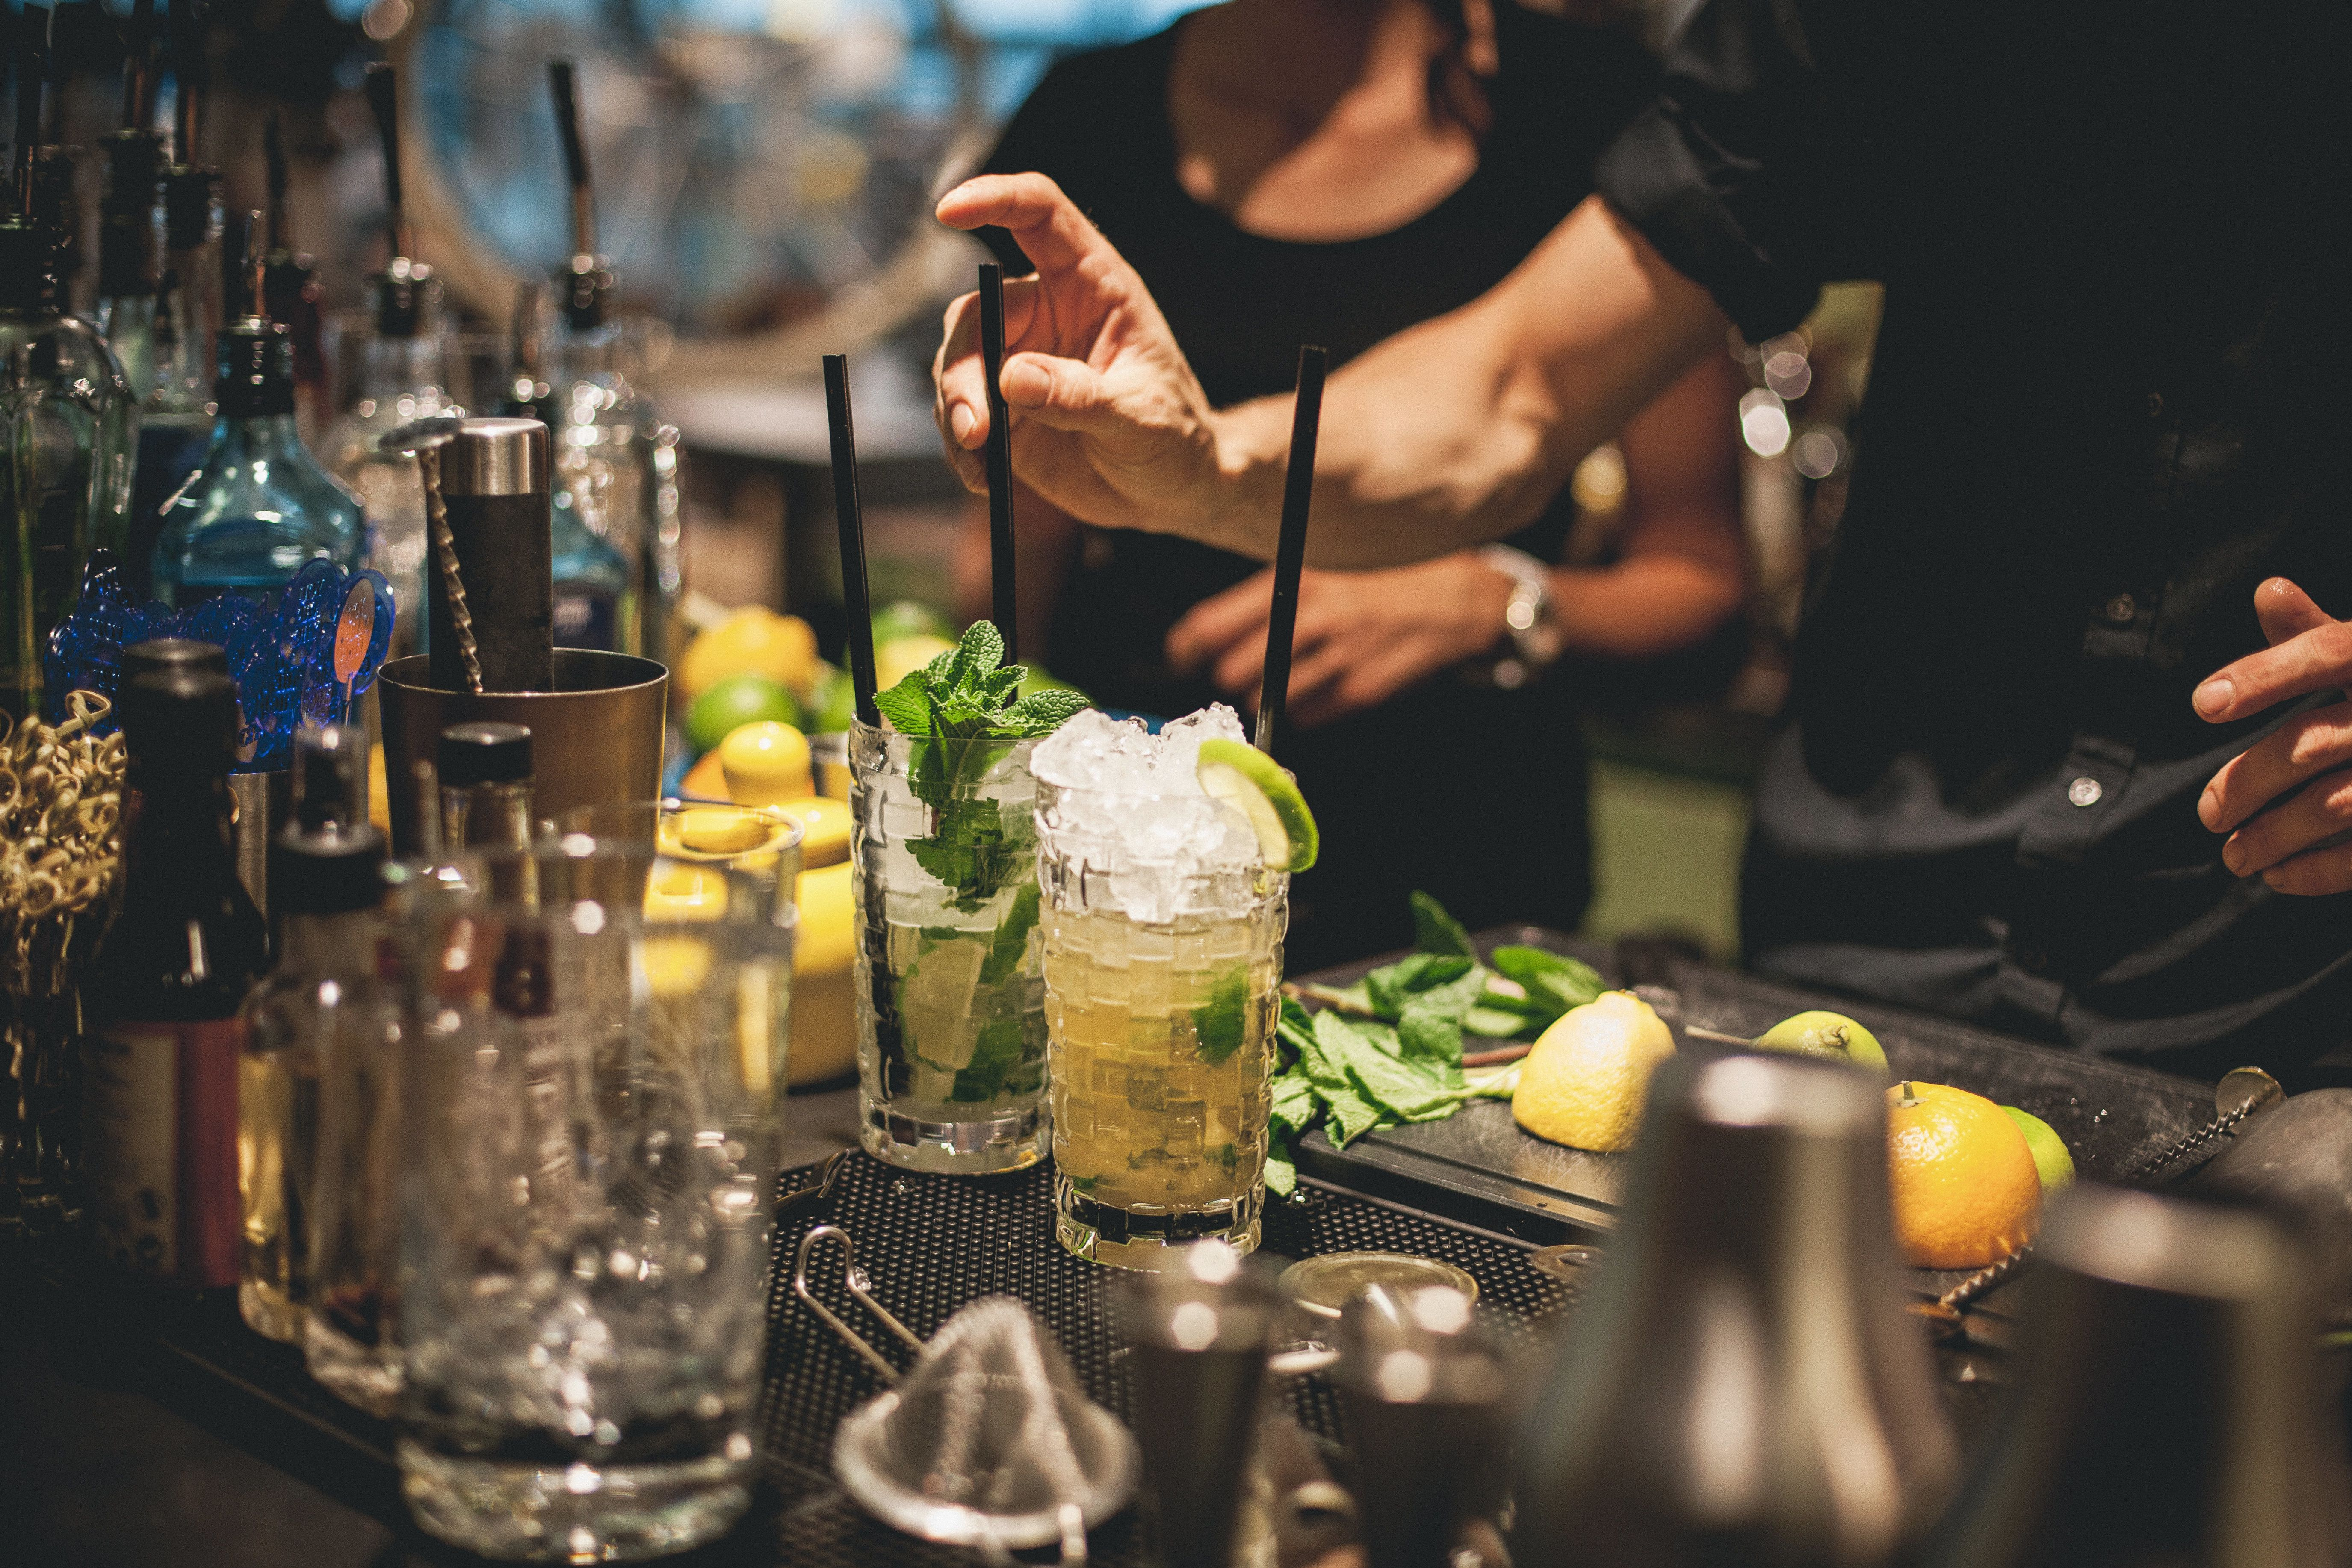 We talked to bartenders abouthow tostand out as a customer.